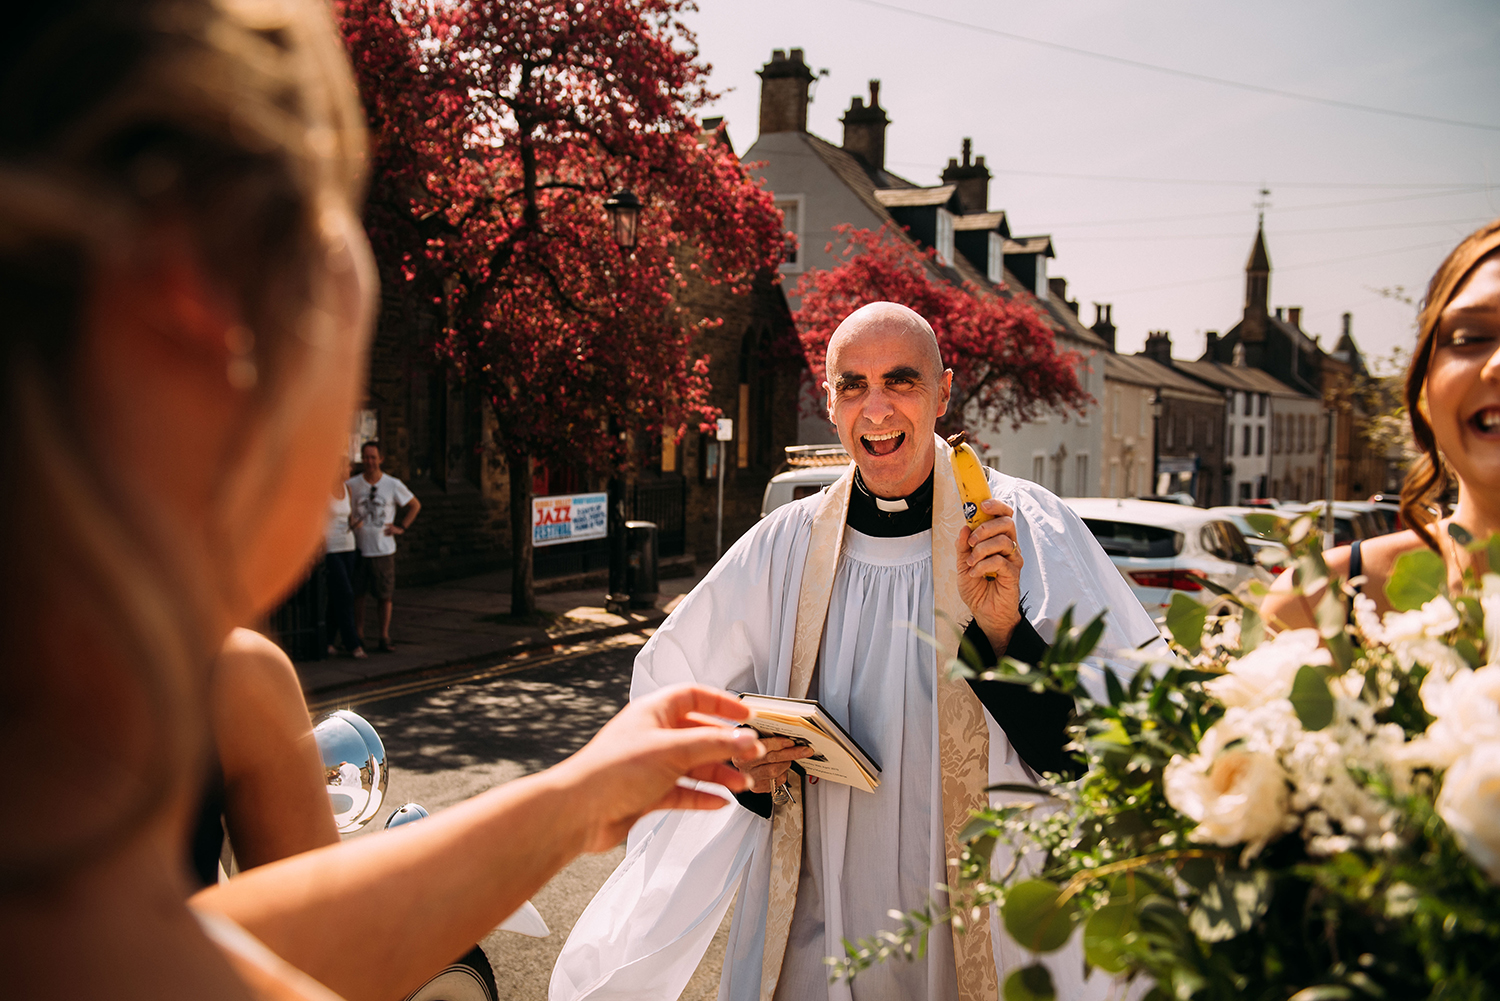 the vicar arrives with a banana